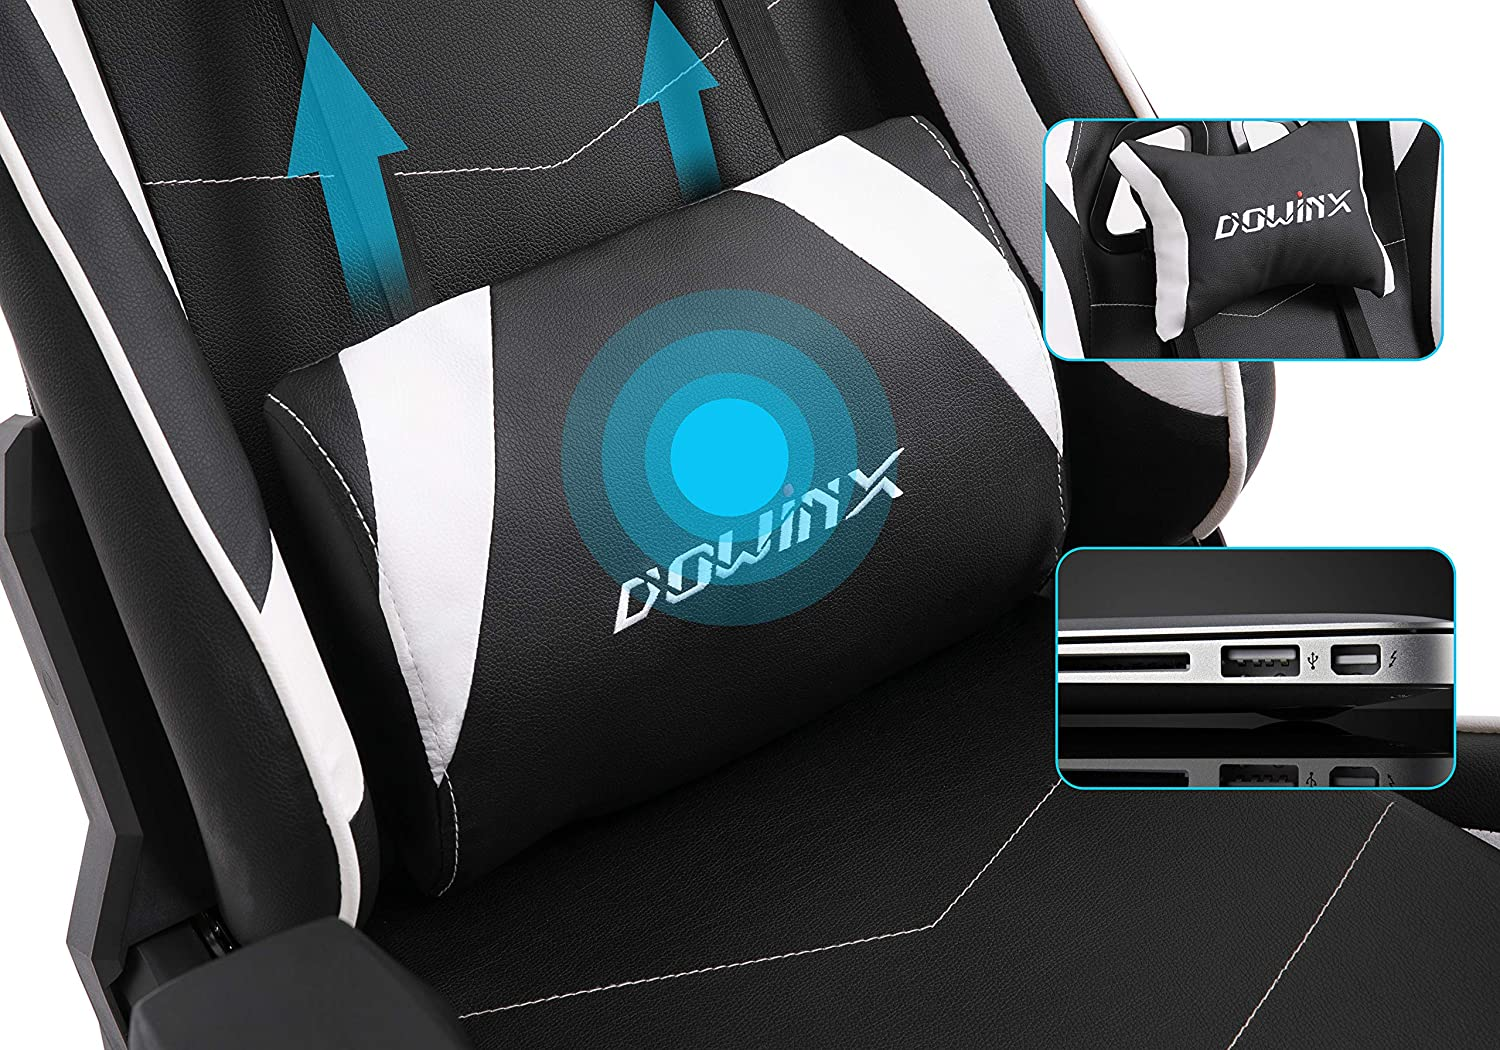 Dowinx Gaming Chair Ergonomic Racing Style Recliner with Massage Lumbar Support, Office Armchair for Computer PU Leather E-Sports Gamer Chairs with Retractable Footrest Black White